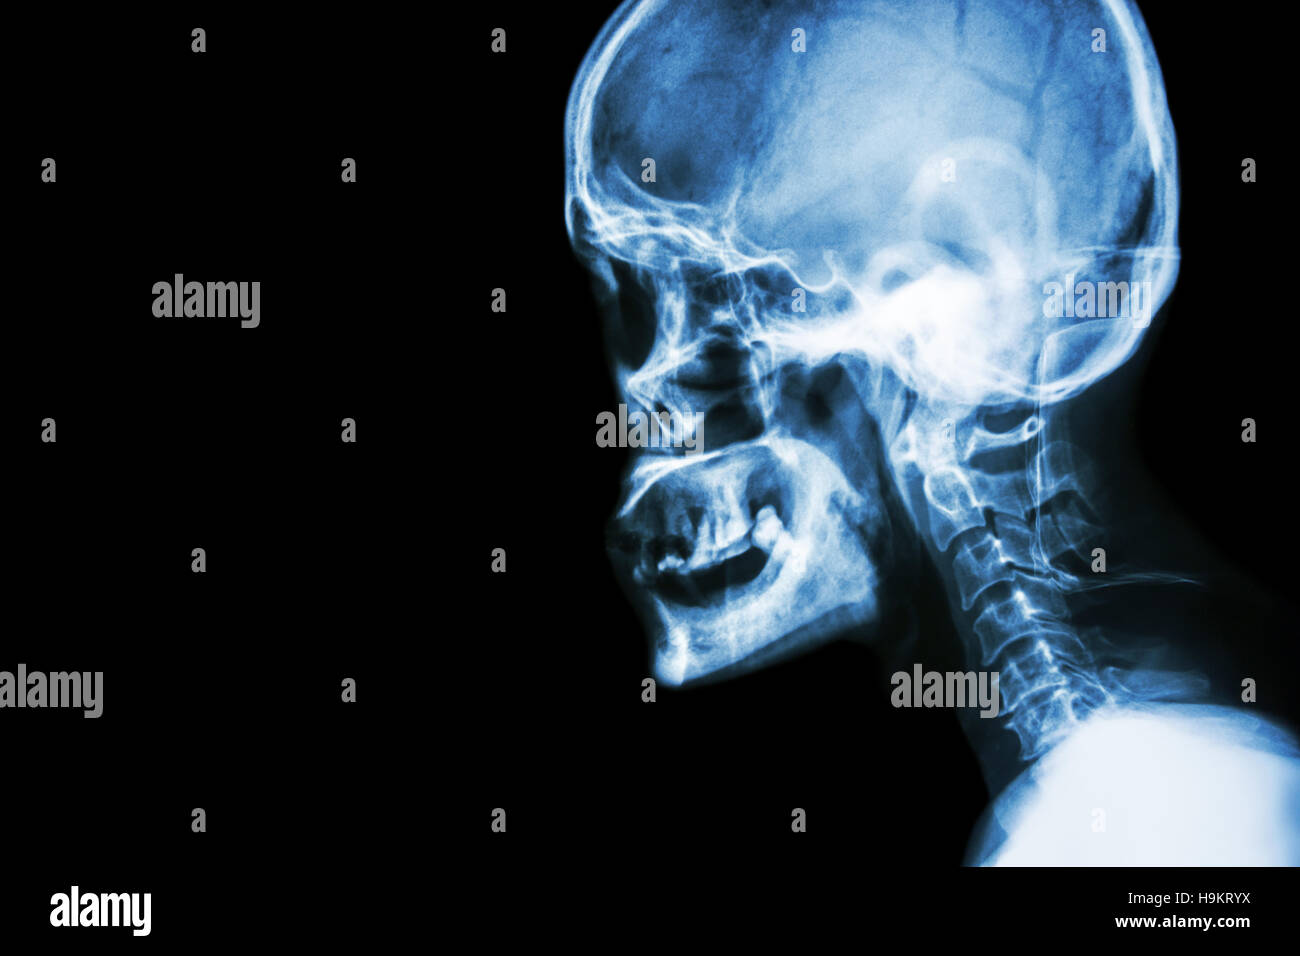 Film x-ray Skull lateral view show normal human\'s skull and cervical ...